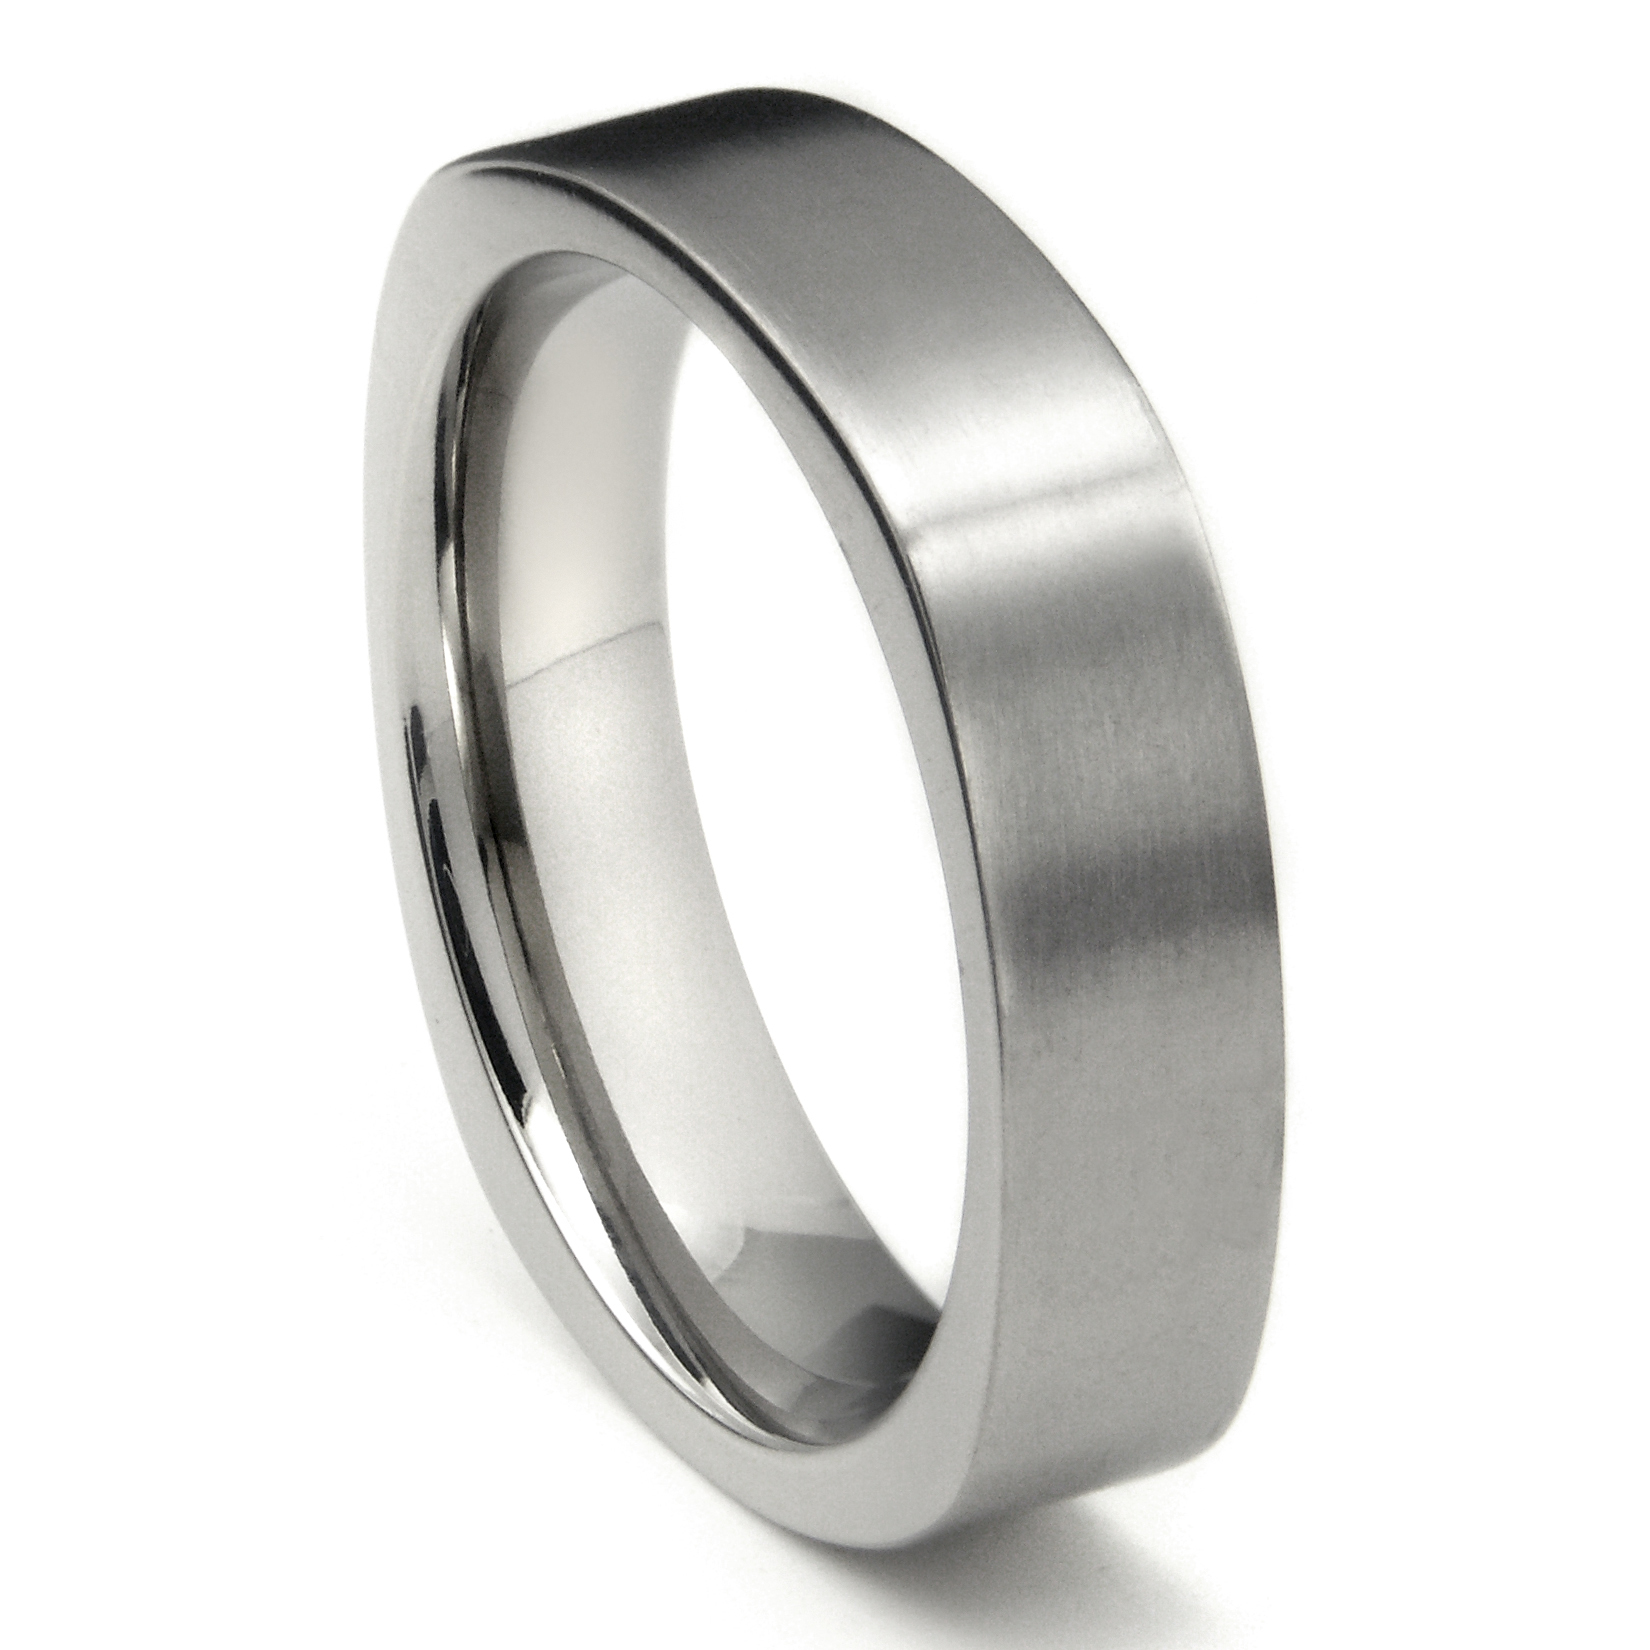 s polished tungsten bands ring fit mens men rounded wedding a carbide platinum products comfort cyrus band rings